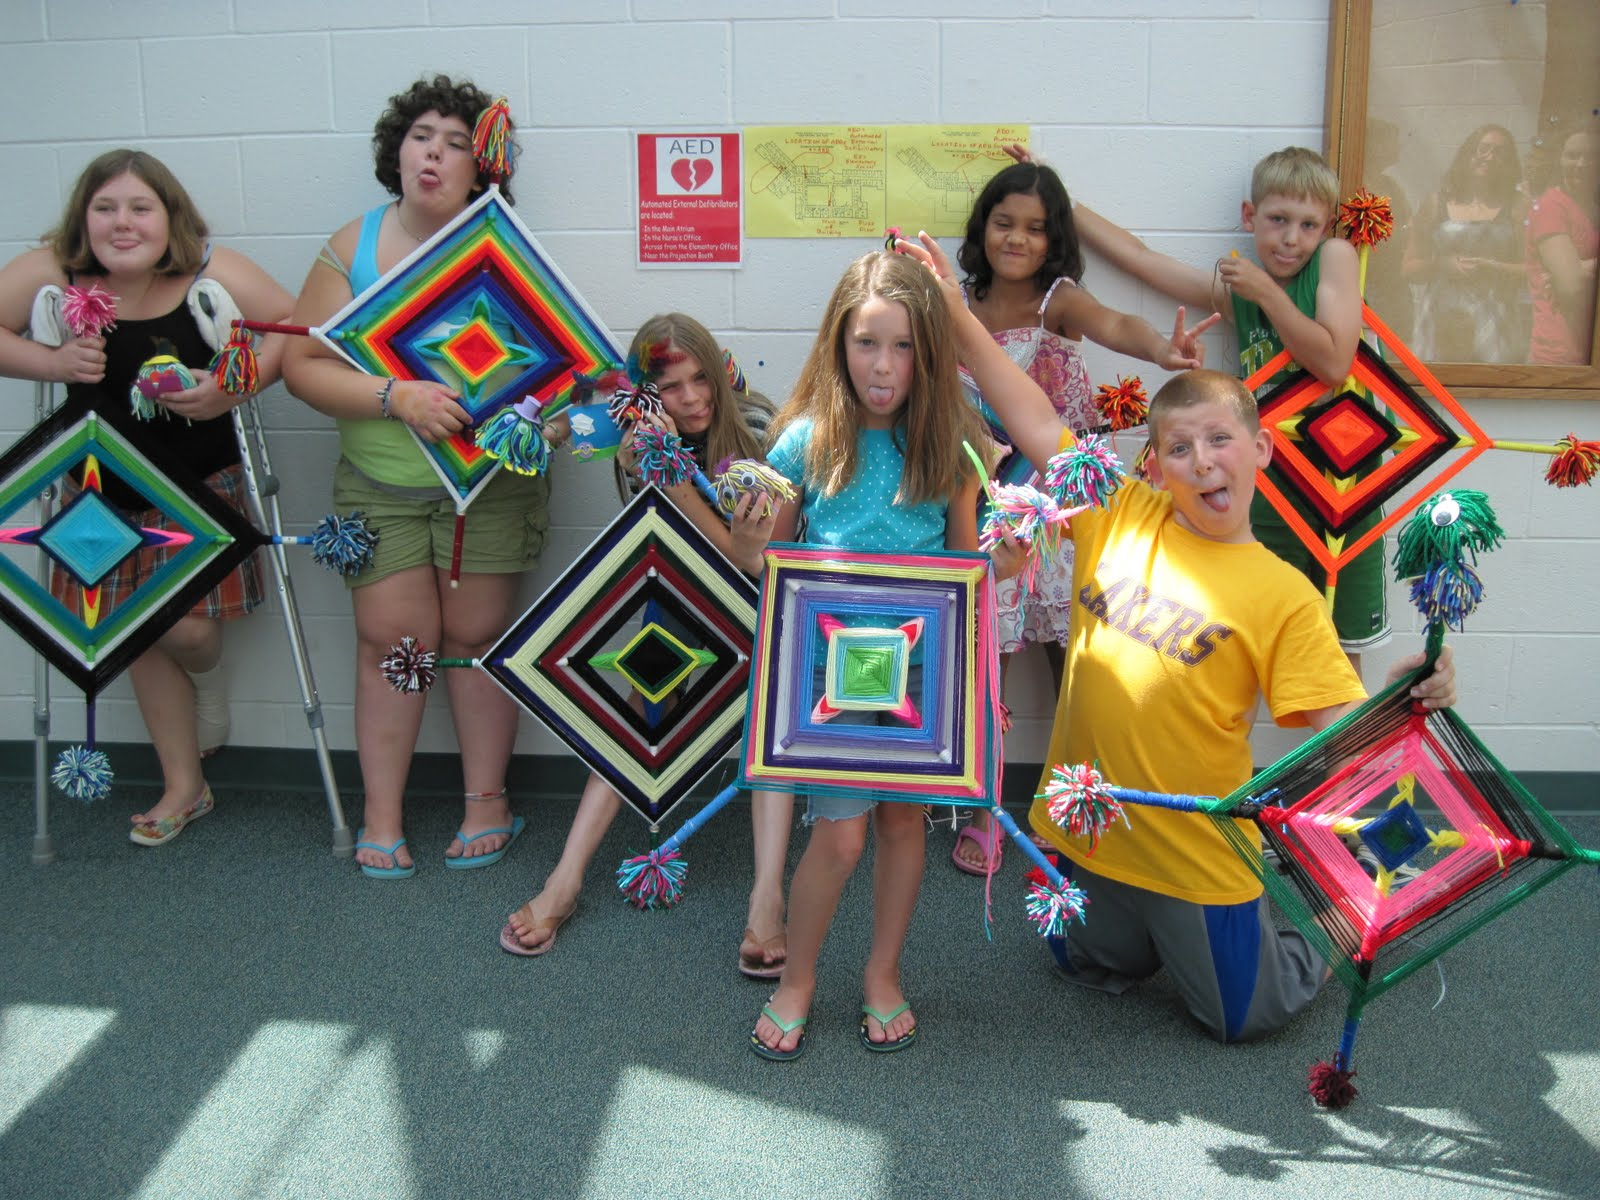 Arts And Crafts Ideas For Kids Summer Camp Part - 45: We Had A Great Week Making Giant Ojo De Dios (Godu0027s Eyes) And Pompom  Critters, And Learning To Make A Japanese Kumihimo Braid. The Kids Ranged  From Those ...